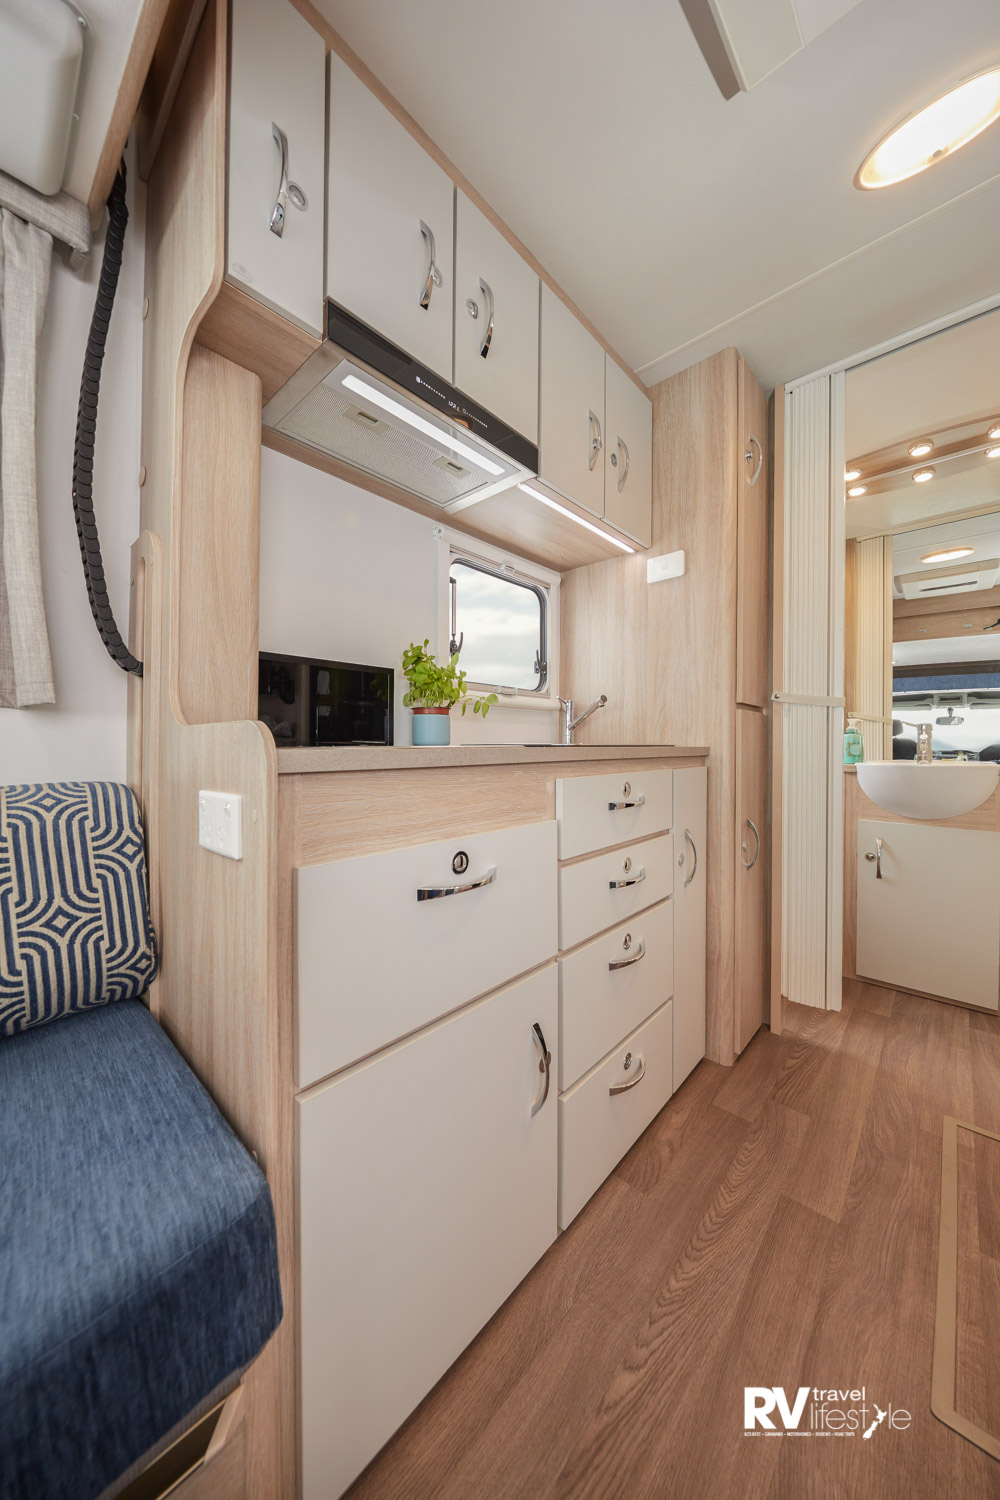 Interior floor space is good, the kitchen offers multiple under-bench drawers and cupboards, as well as overhead cupboards for storage. The bathroom area is mid-ship with bedroom behind in the rear